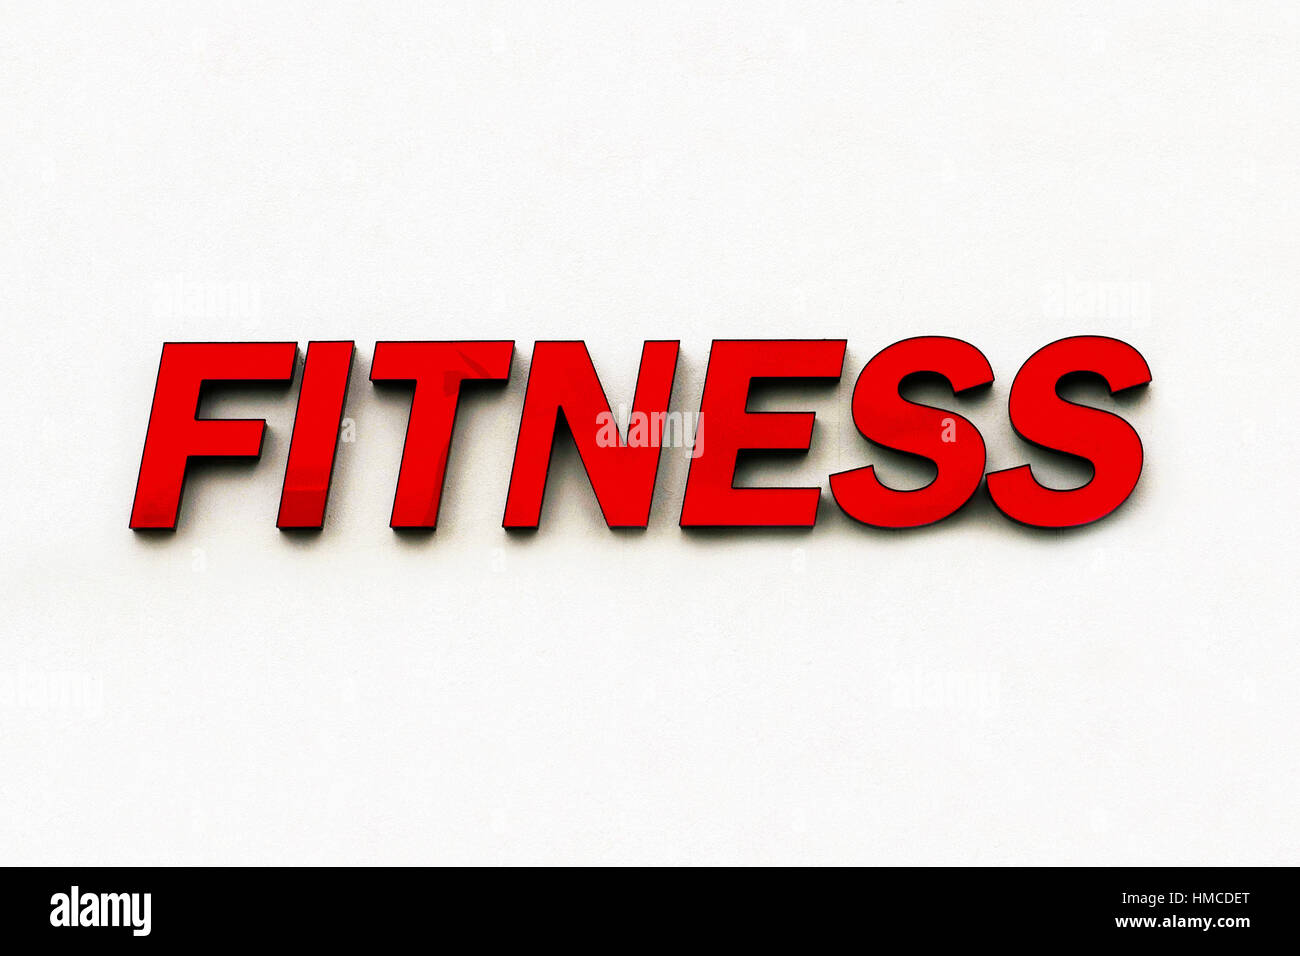 Red plastic sign of the word 'Fitness' advertises a gymnasium and is isolated on a white wall background. - Stock Image